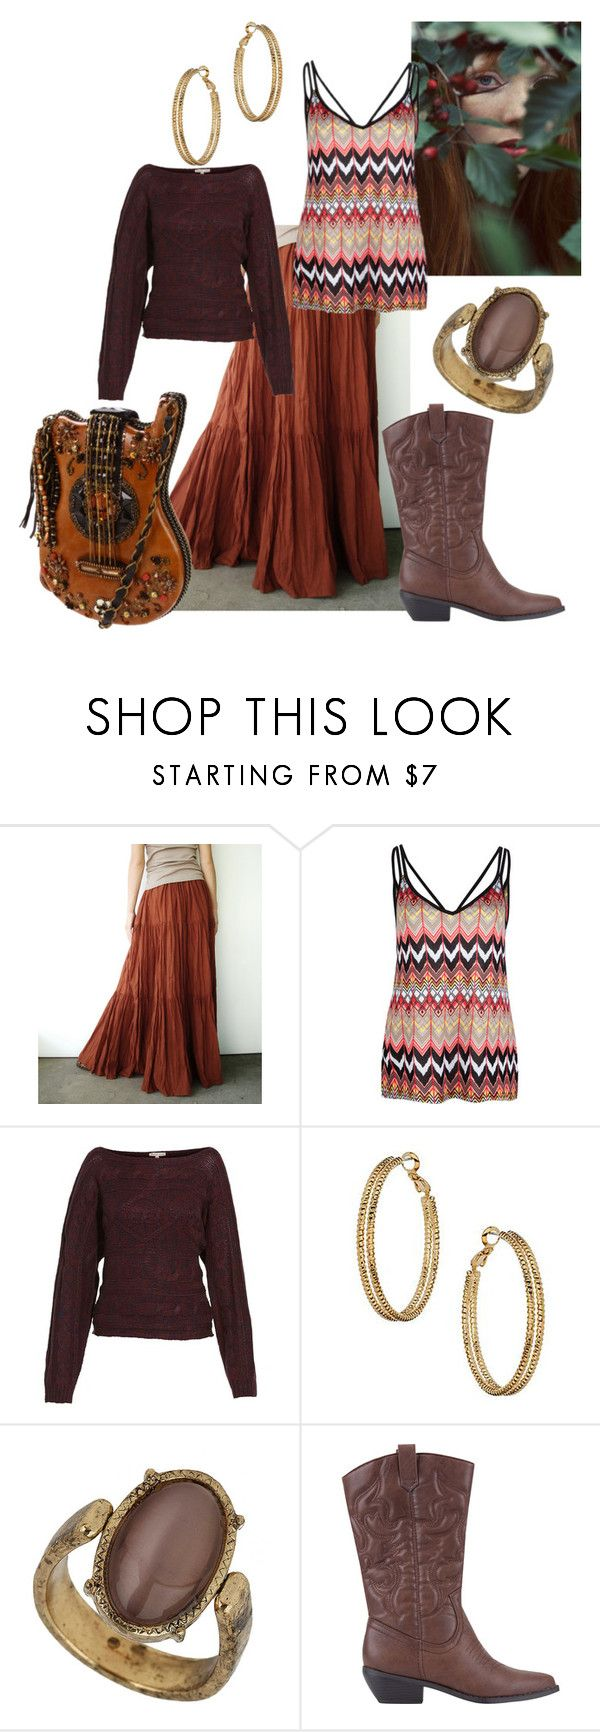 """""""FWF: Mary Frances Bag"""" by silkohapsi ❤ liked on Polyvore featuring Full Tilt, Mary Frances Accessories, Brave Soul, Wallis, Miss Selfridge, Soda and gypsy"""